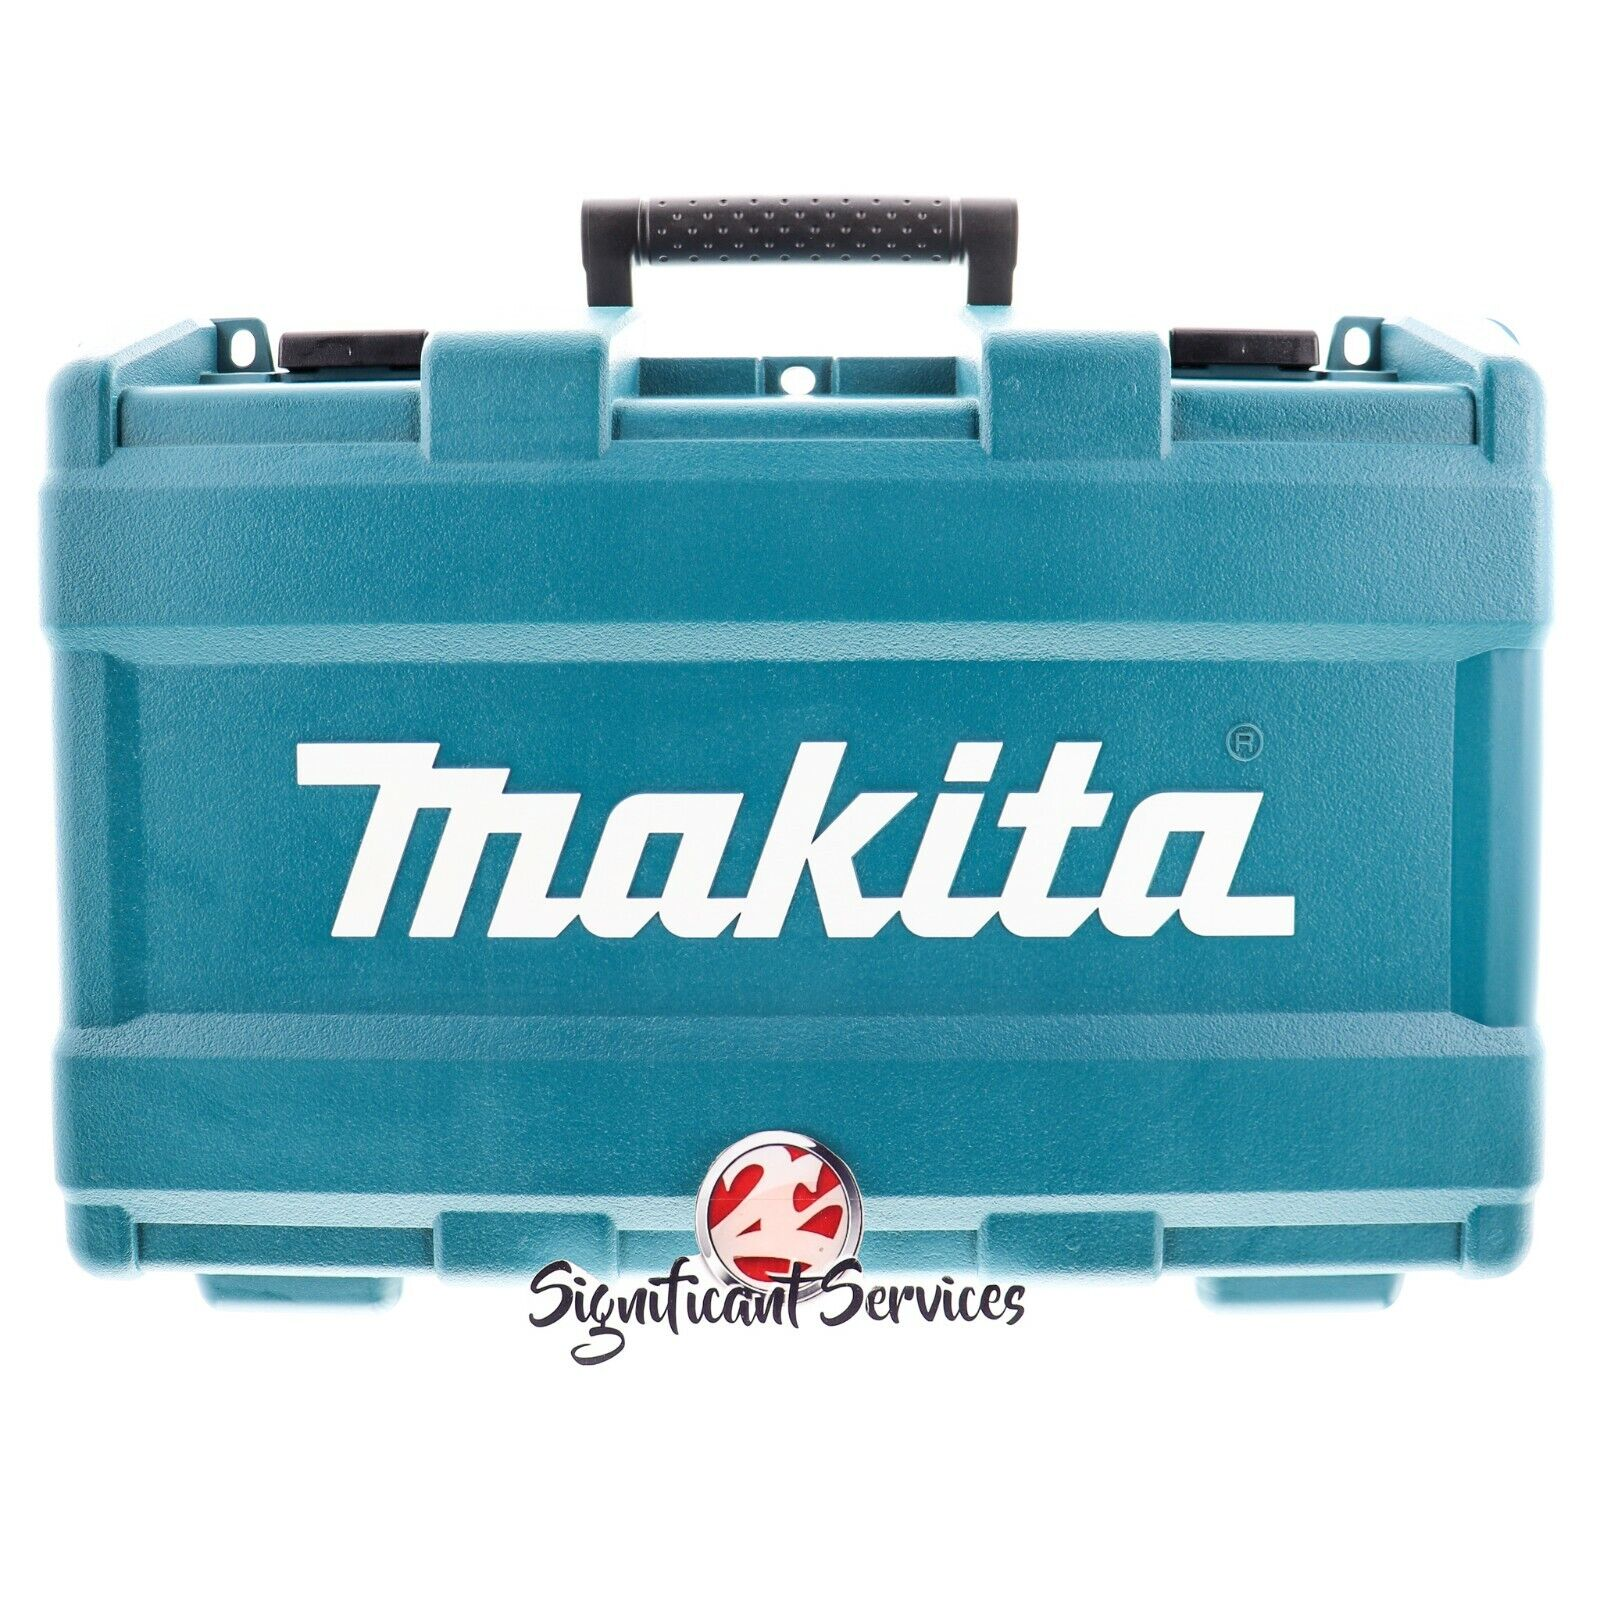 XSF03R significantservices Makita XSF03Z Brushless Impact Driver Hammer Drill Storage Hard Case Cordless